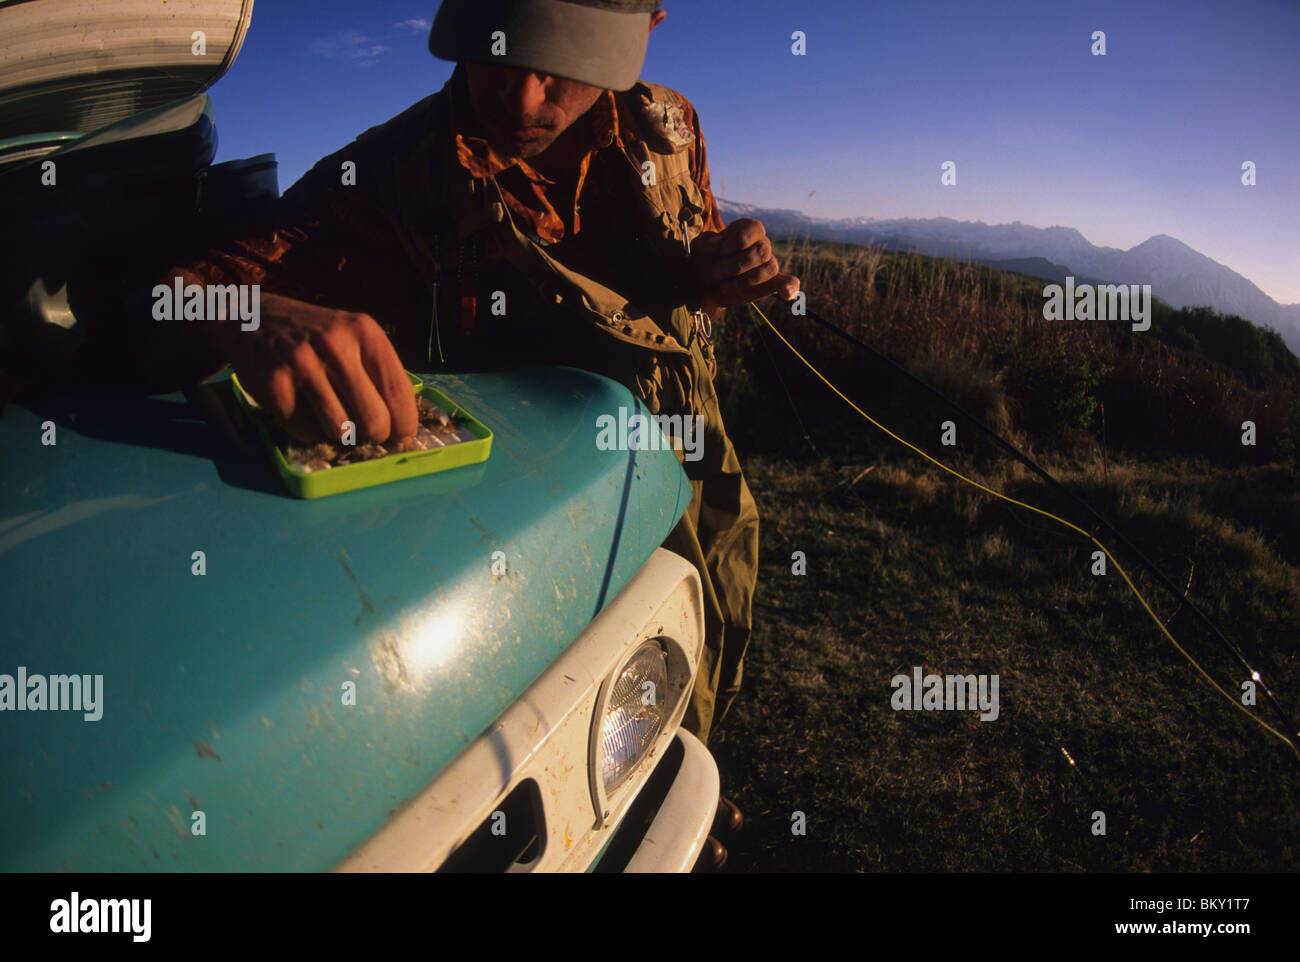 A man picks a fly from his fly box while  fishing in Bishop, California. - Stock Image